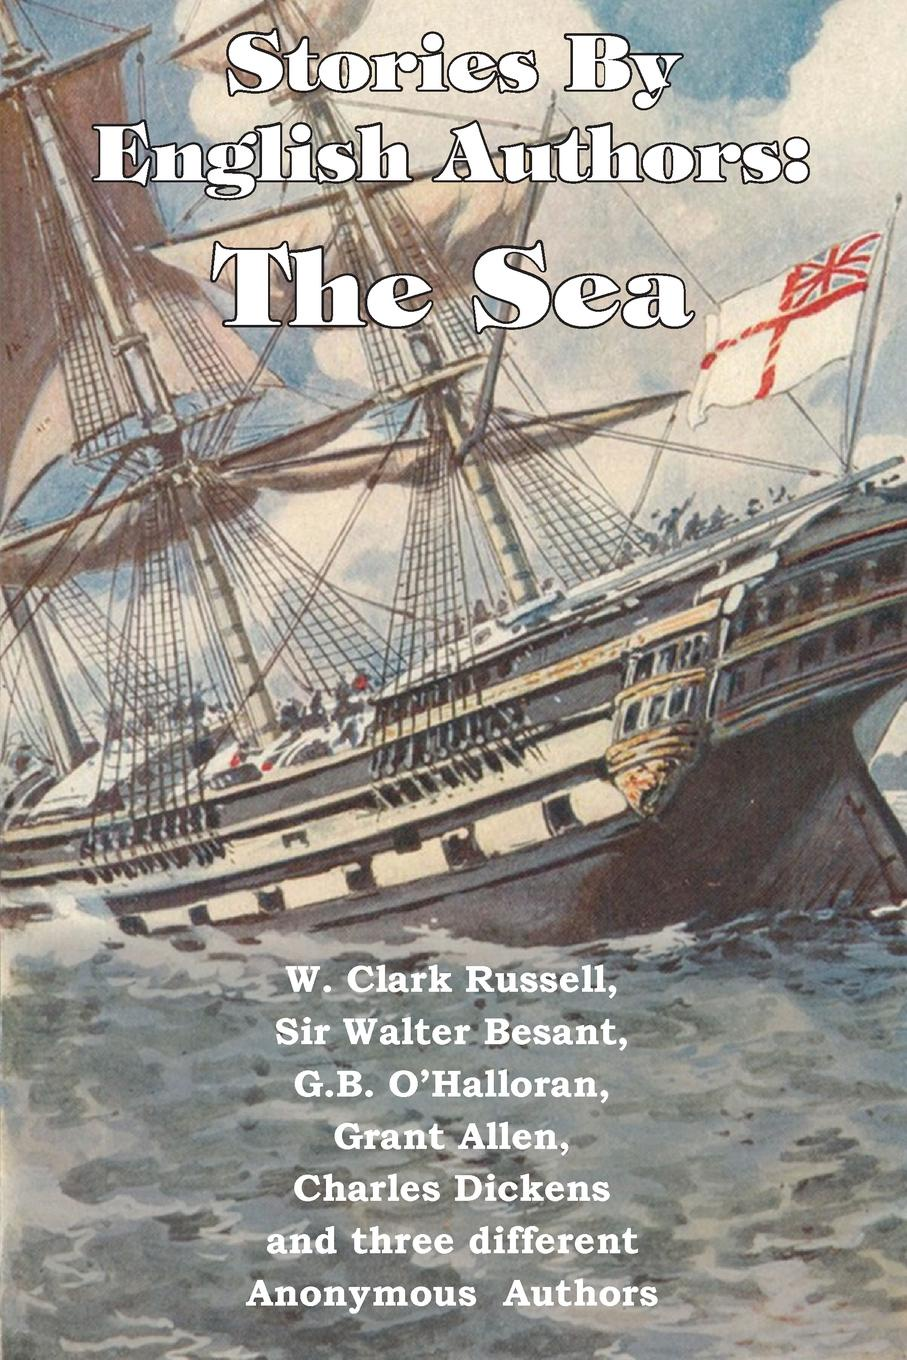 W. Clark Russell, Чарльз Диккенс, G. B. O'Halloran Stories by English Authors. The Sea stoker b the mystery of the sea